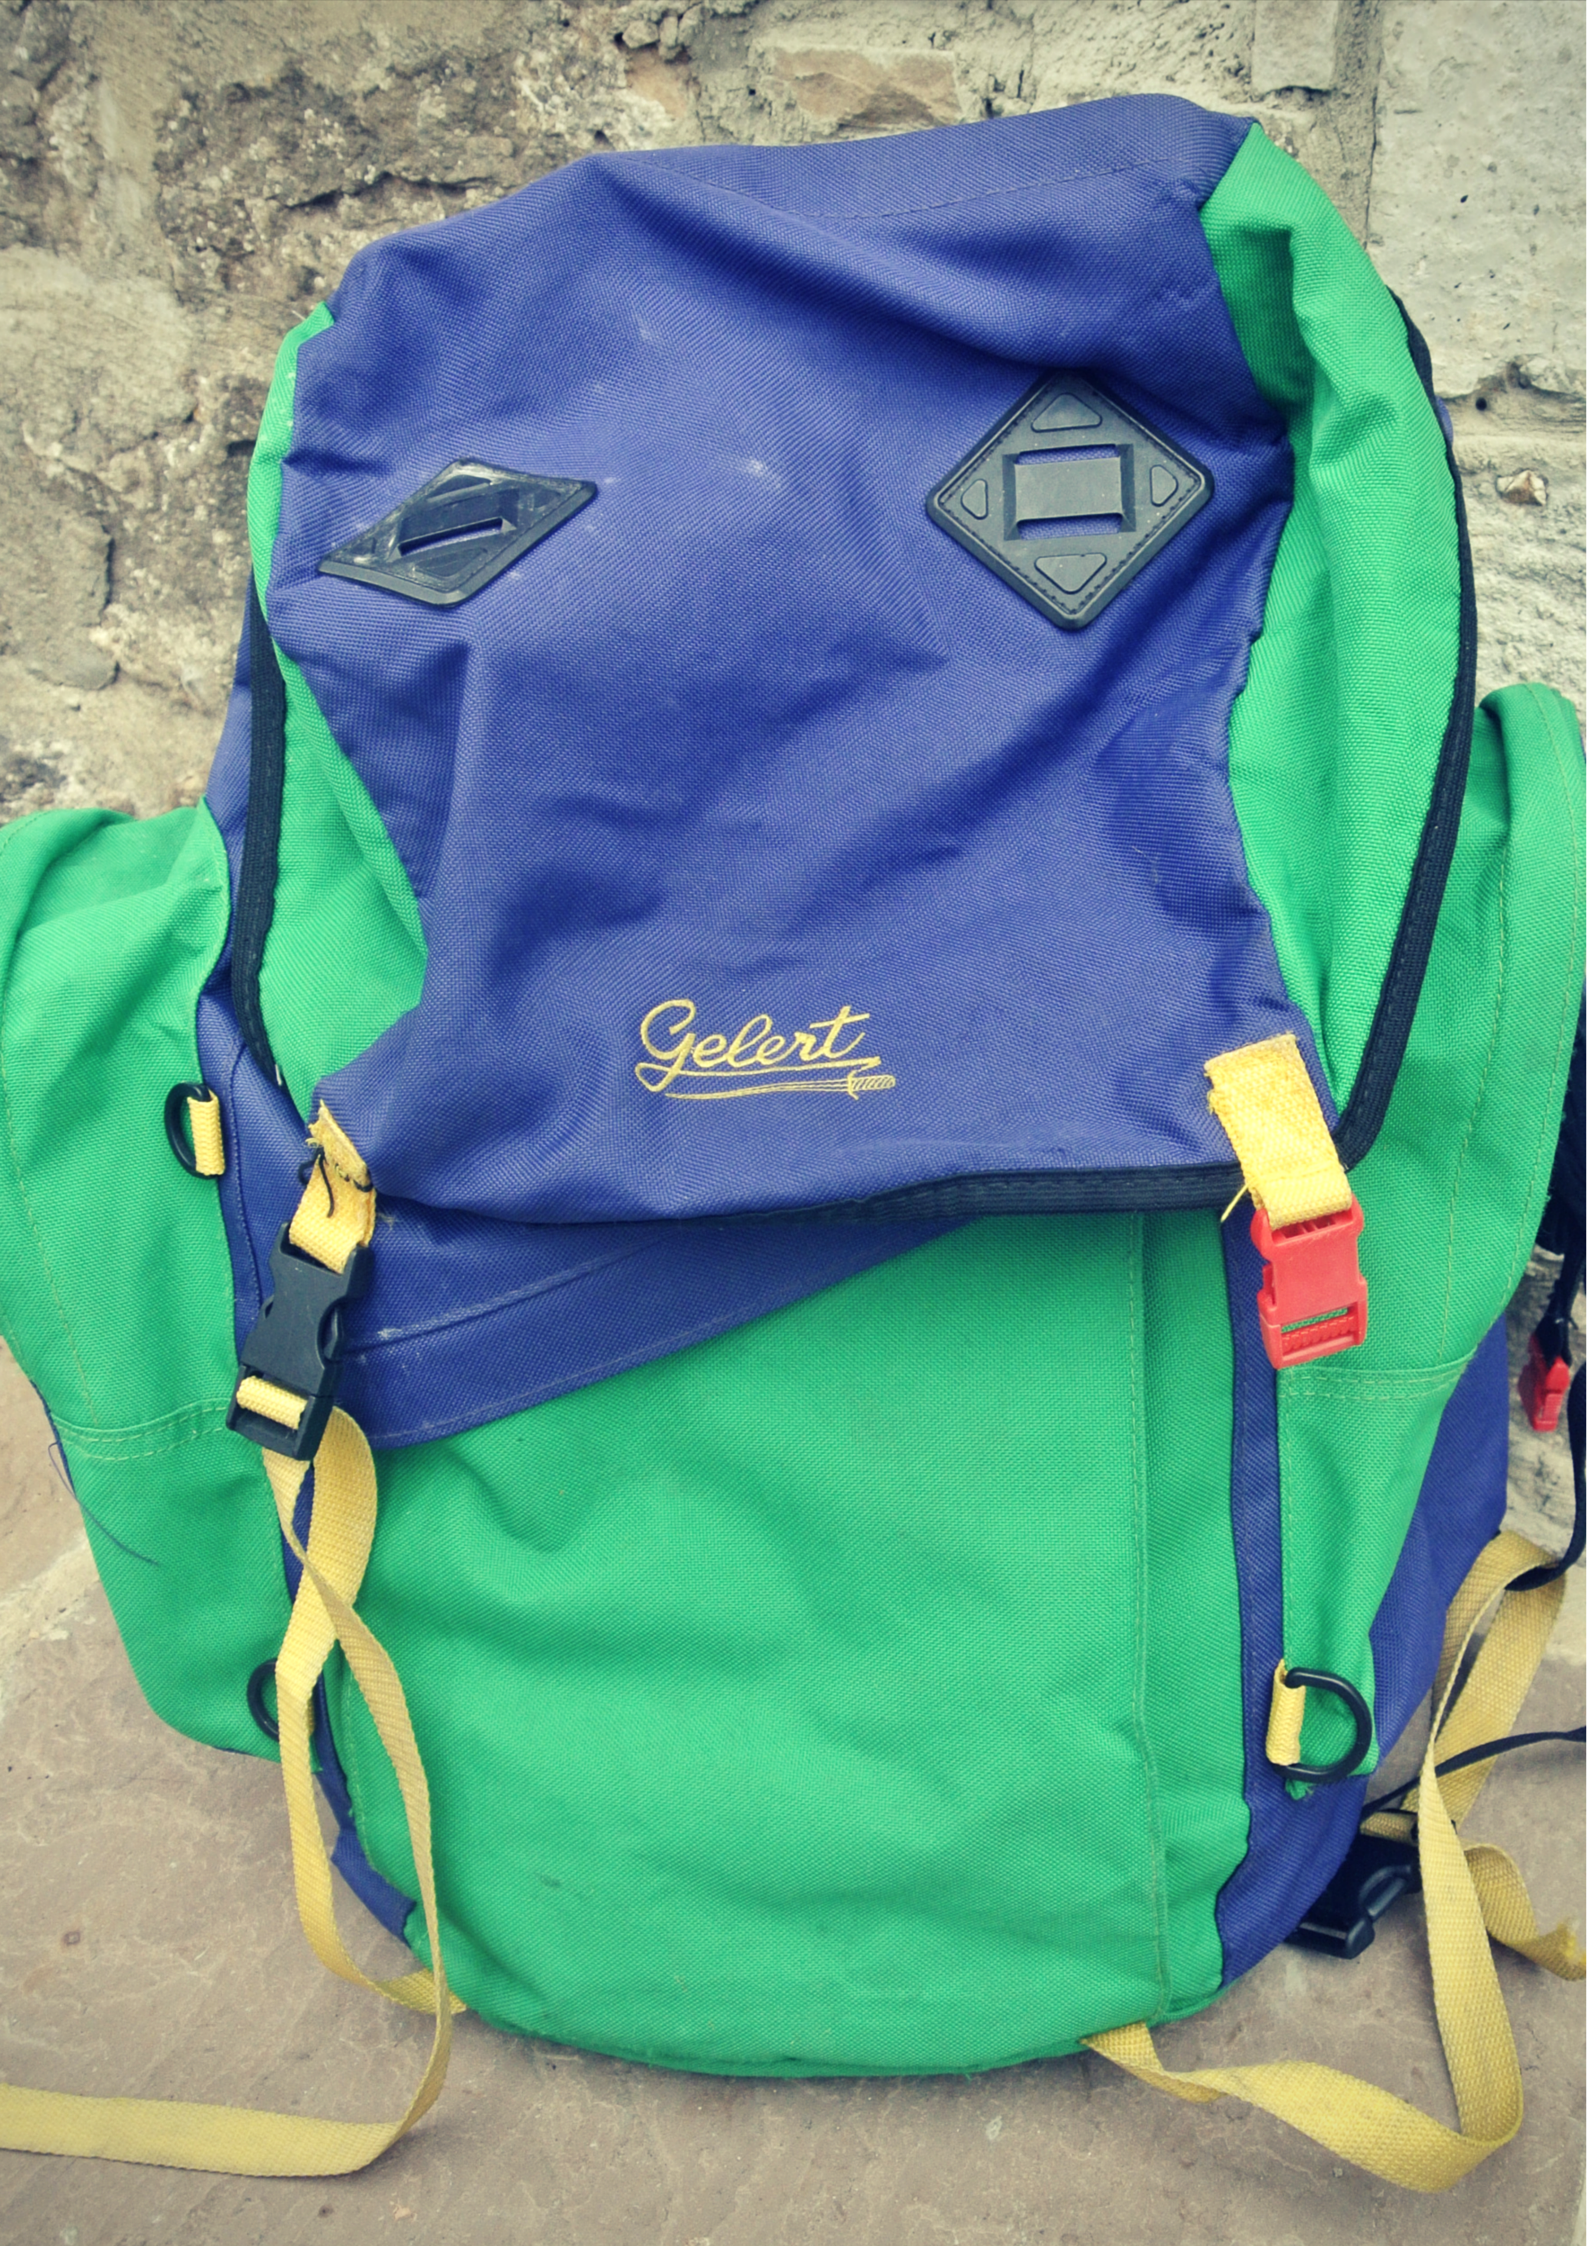 Backpack - 1 of the must-have items for backpacking in Colombia